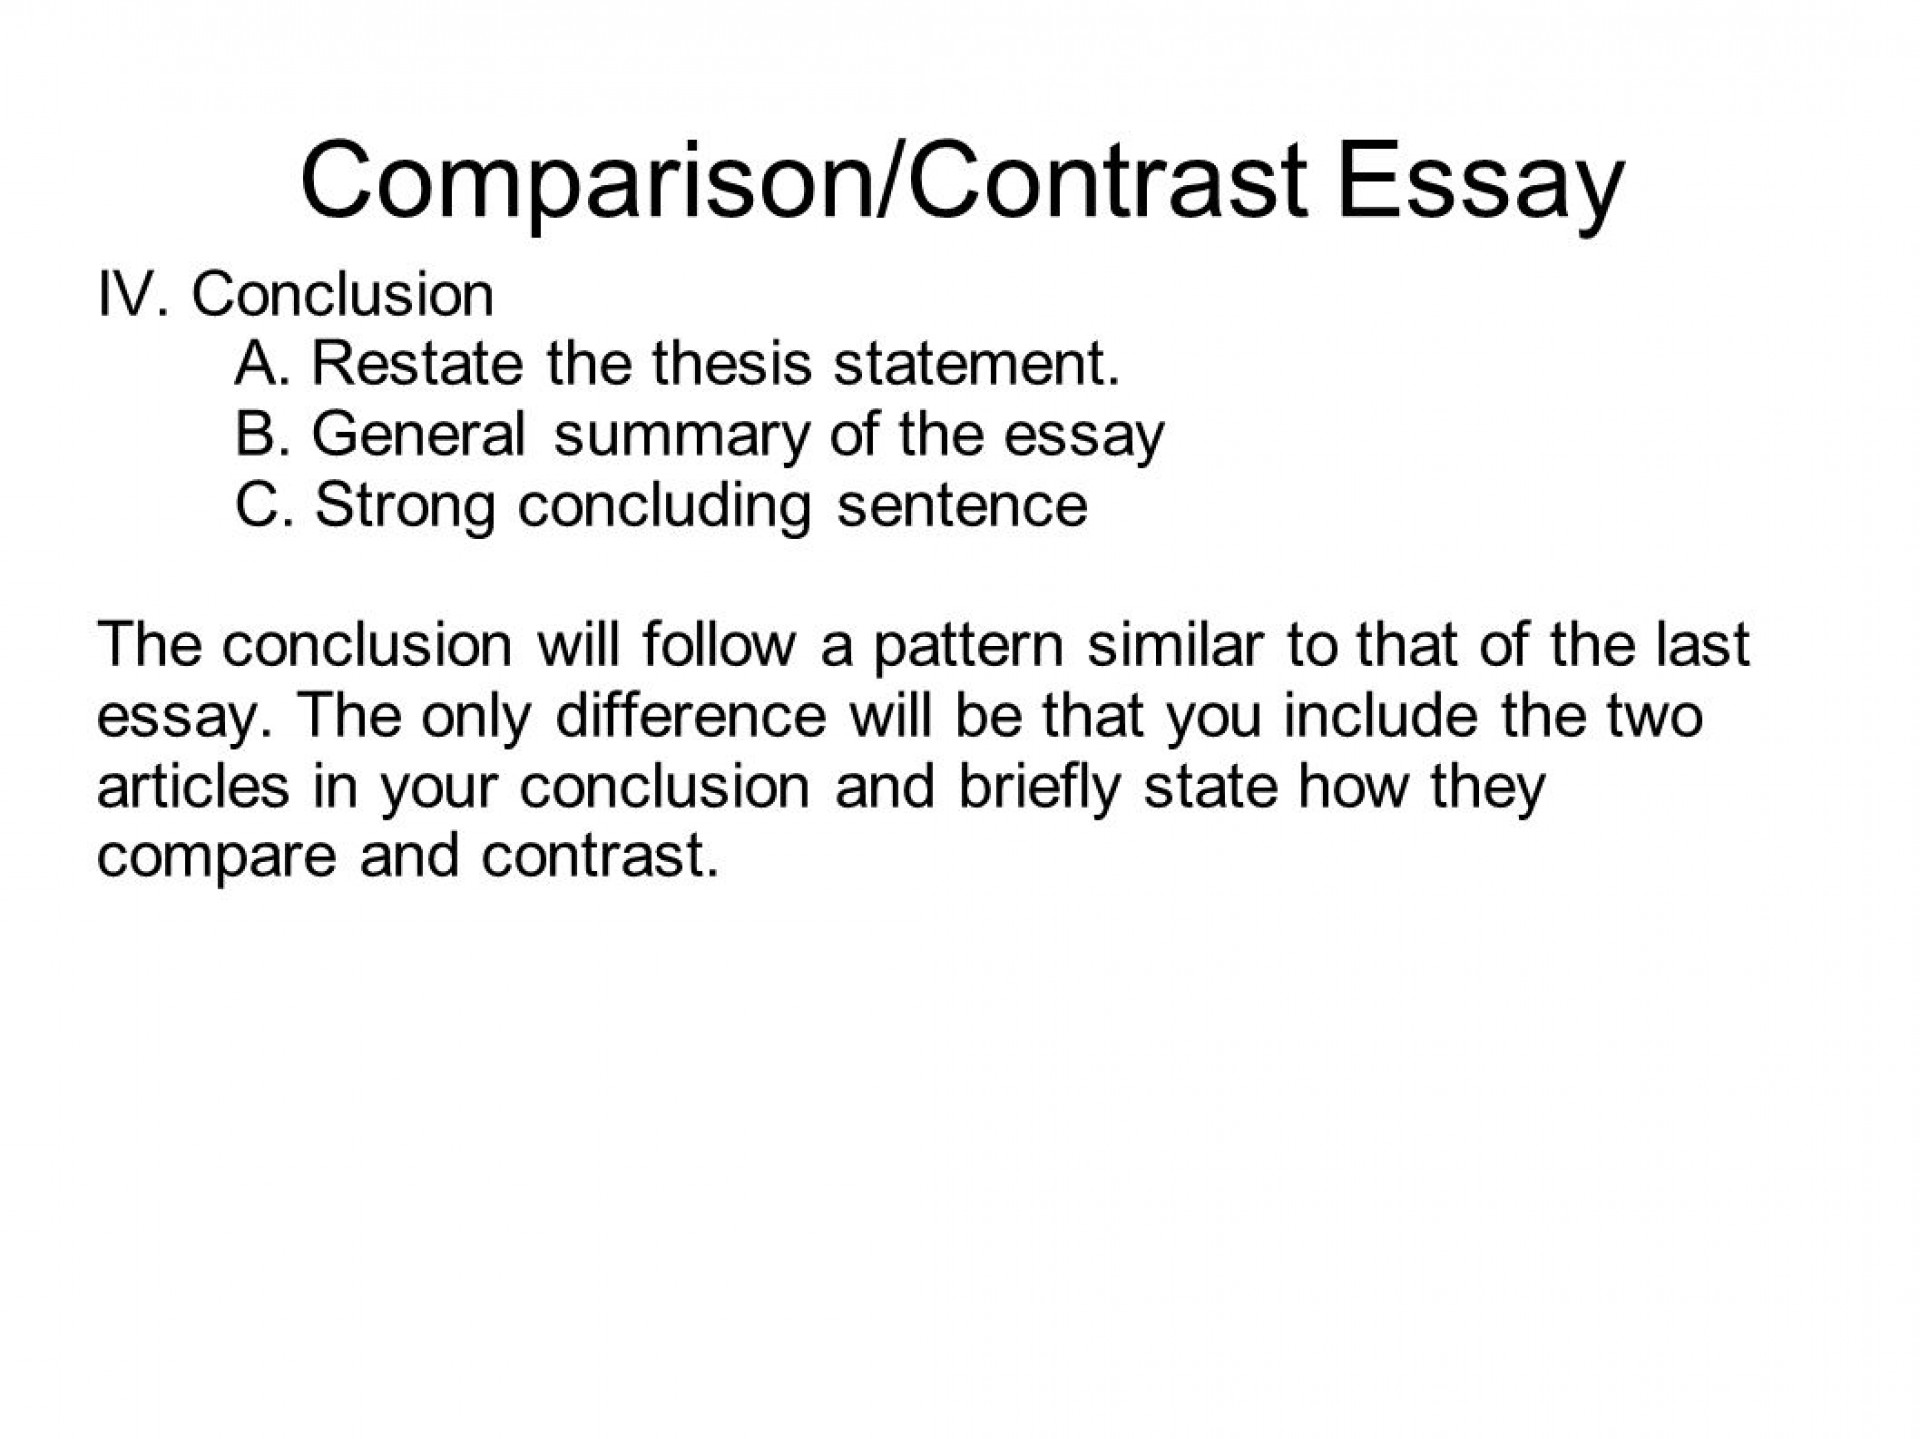 013 Abortion Essay Conclusion Paragraph For Compared Sli Argumentative Samples Example How To Write Awesome Persuasive 1920